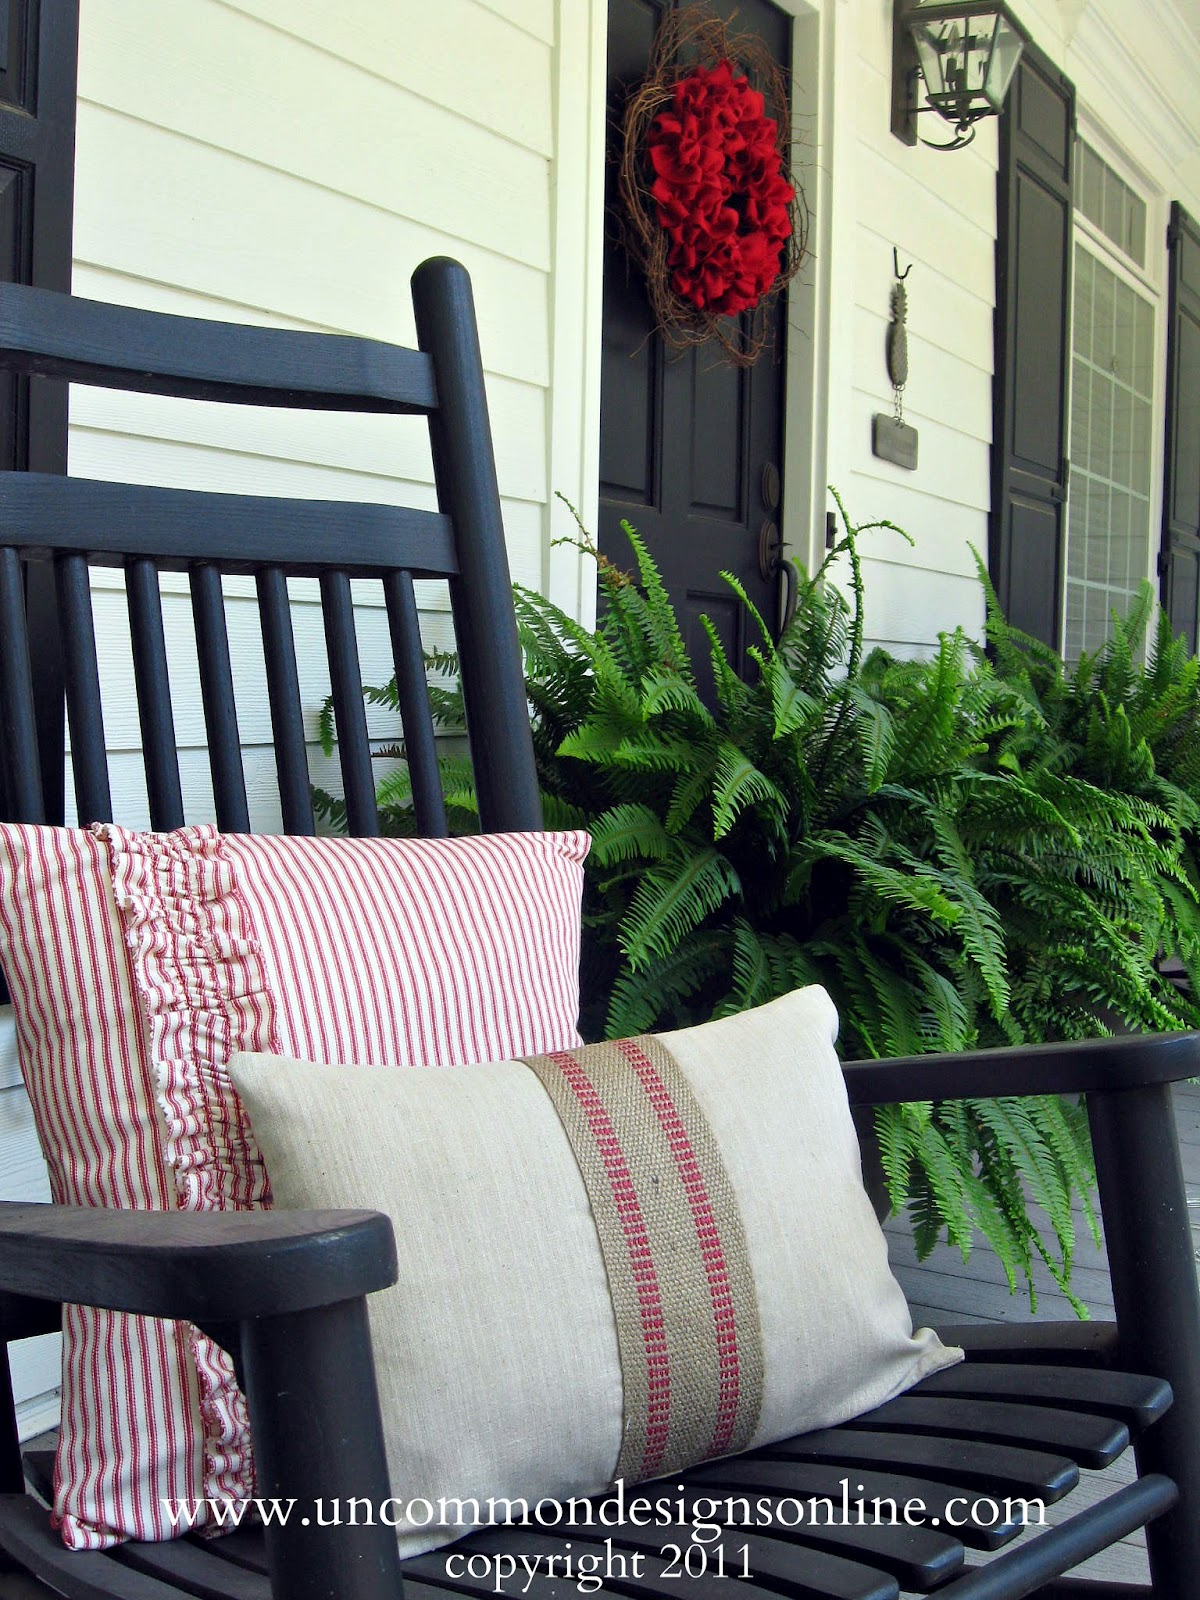 patriotic flag porch lanterns guest post from Uncommon